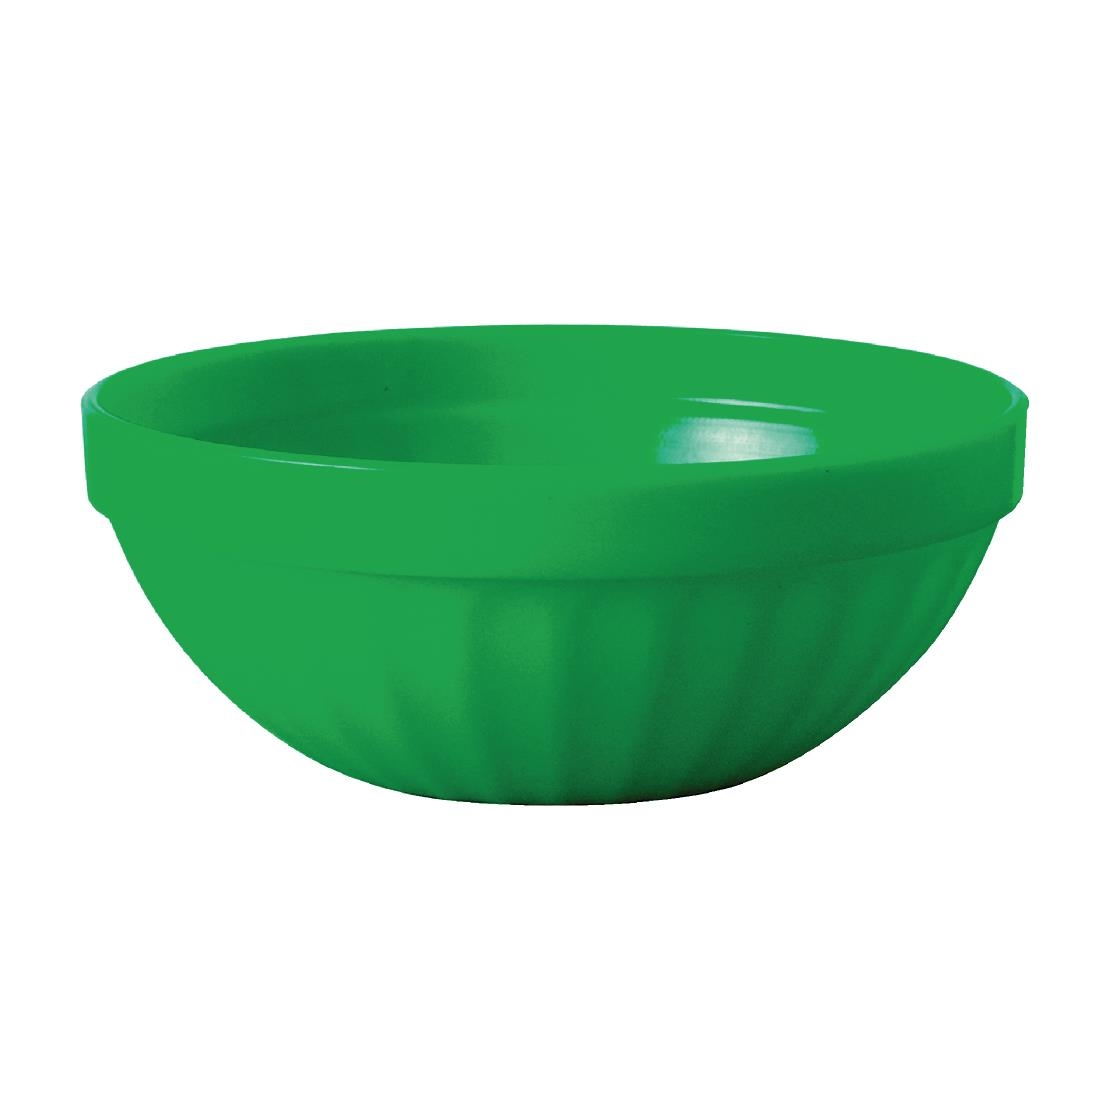 Small Bowl - Green